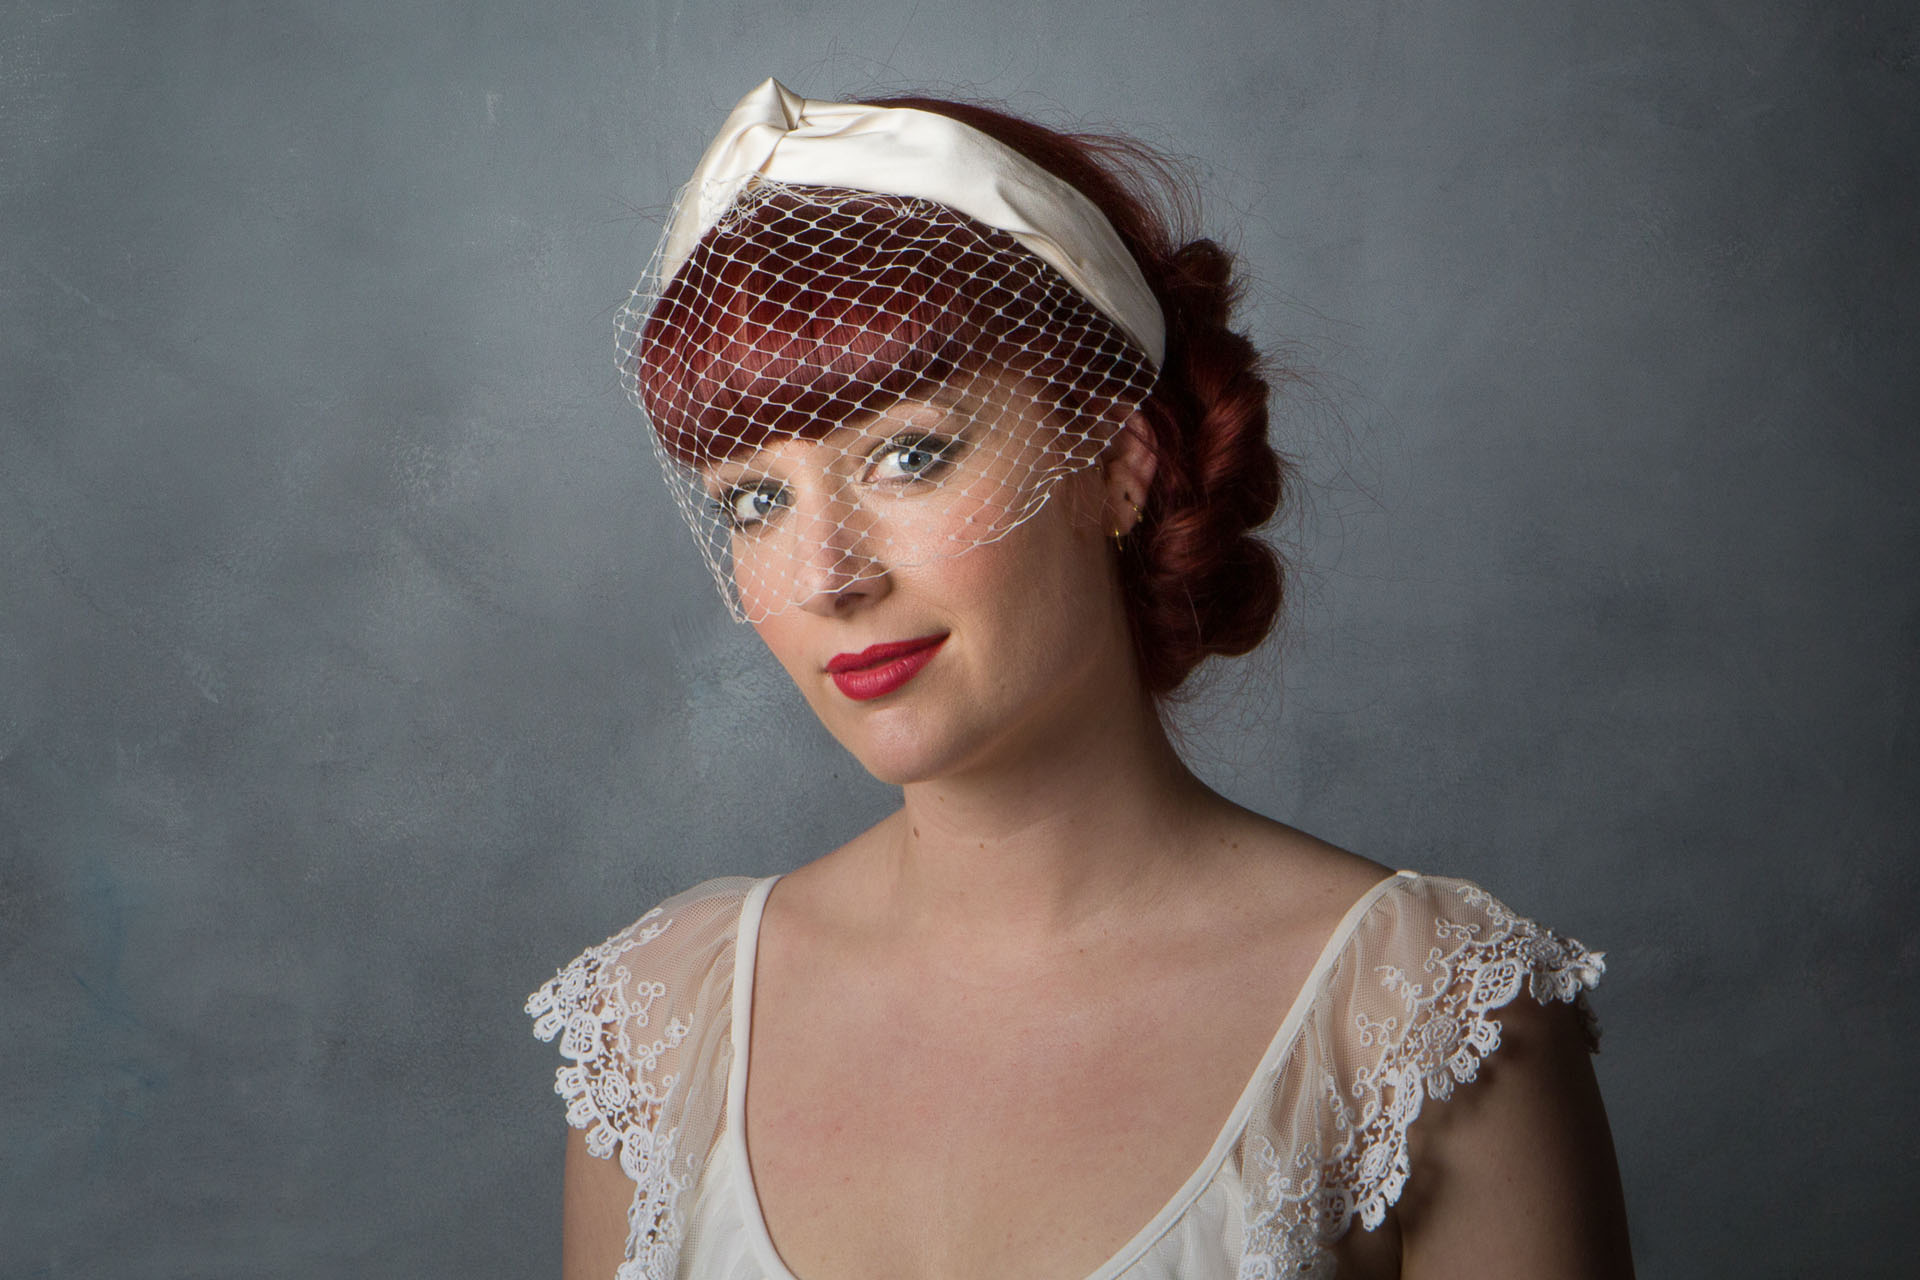 bde1b573117 1950s Style Turban Bridal Headpiece with Birdcage Veil